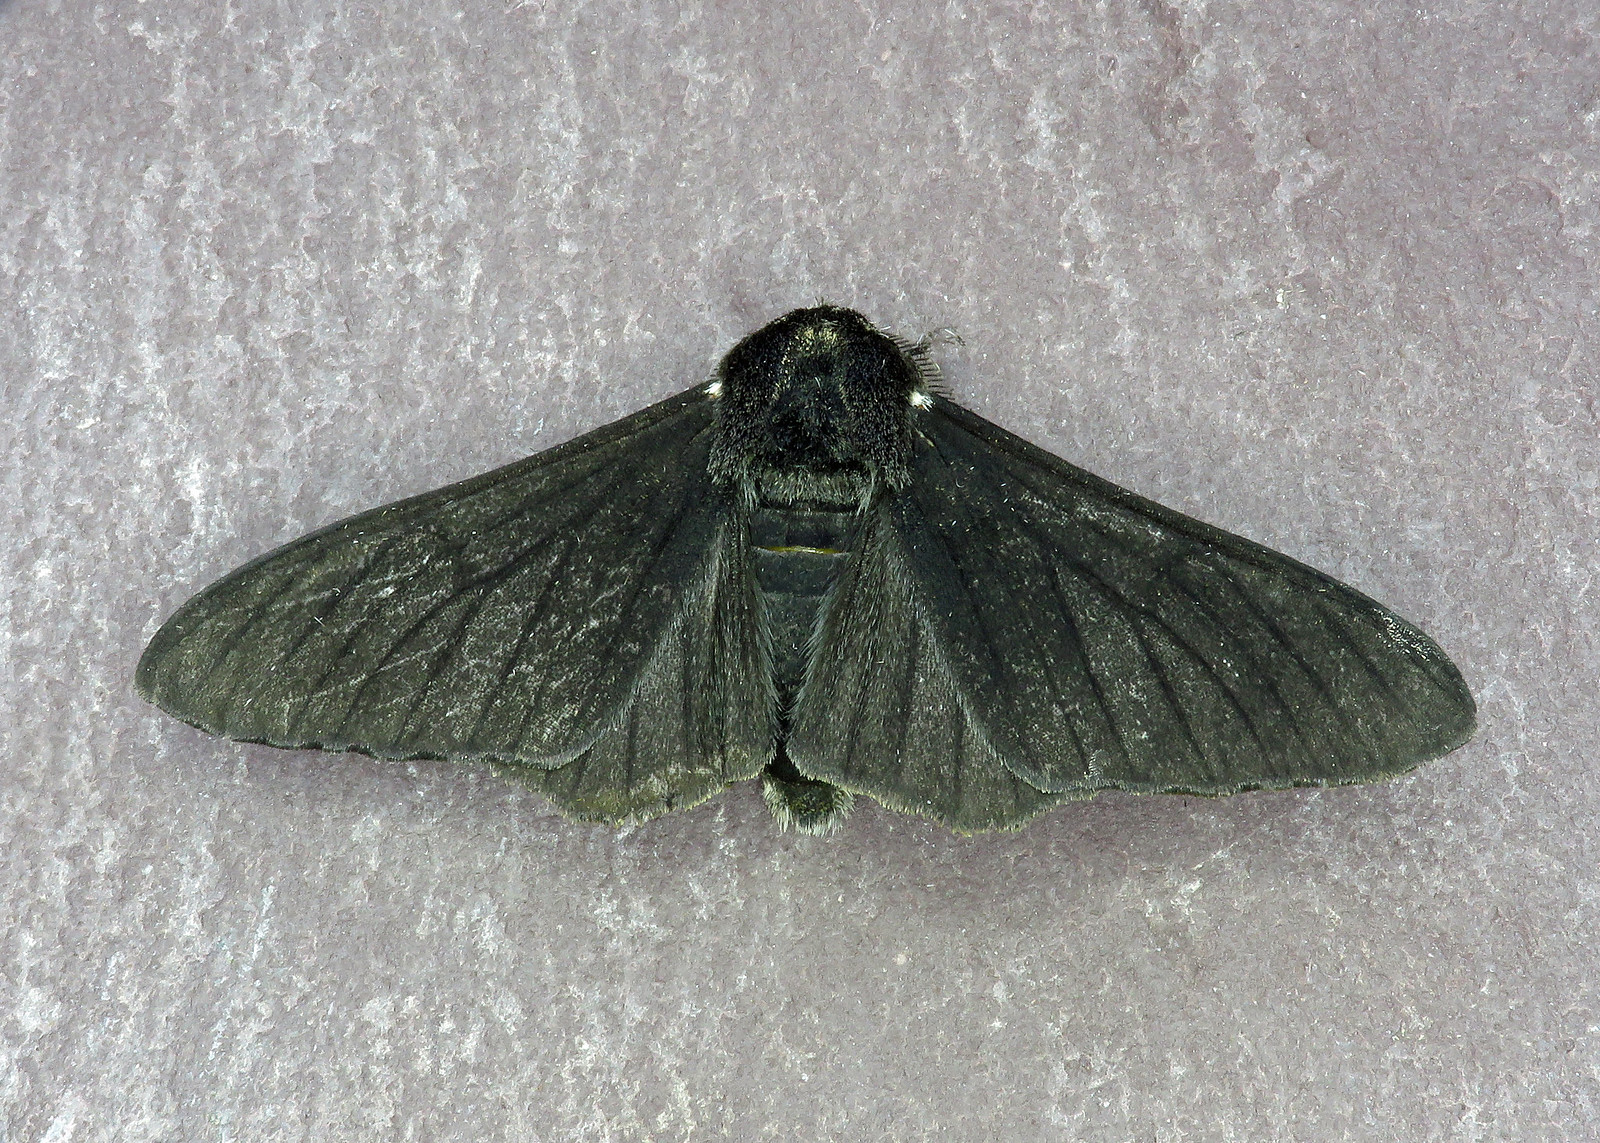 70.252 Peppered Moth - Biston betularia